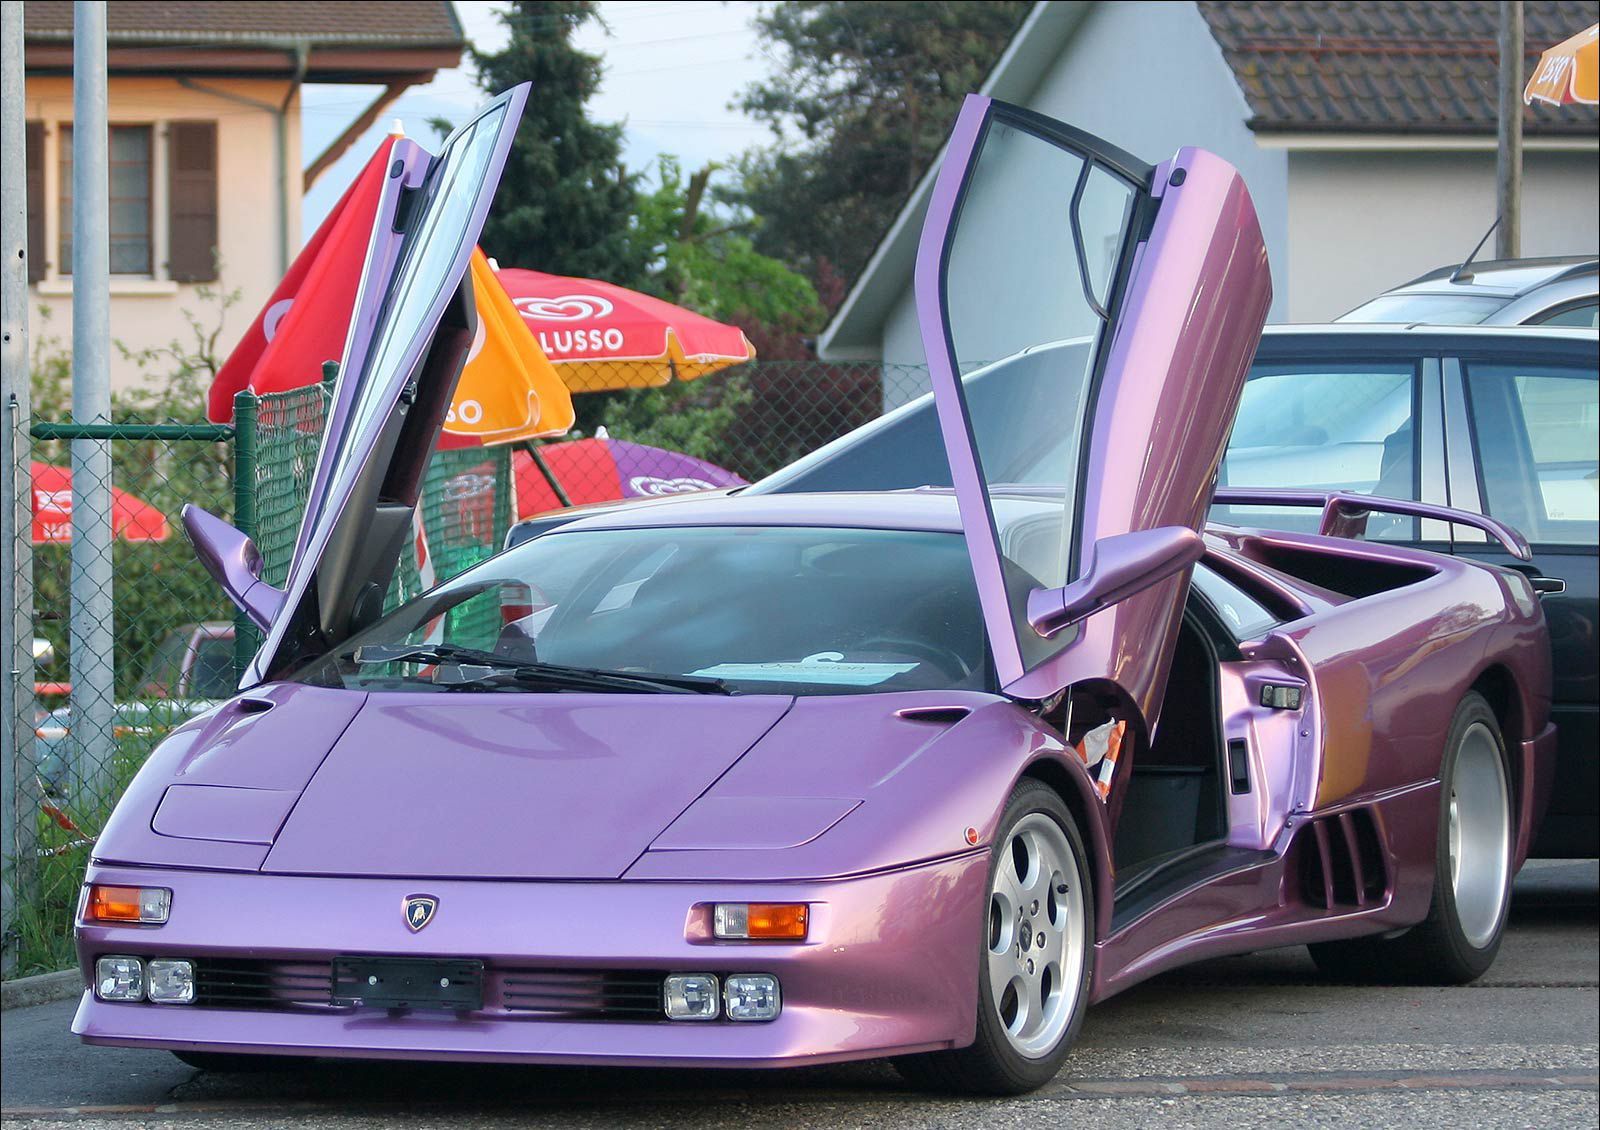 1990 lamborghini diablo somewhat tame successor to the countach but still blindingly fast with up to 595 hp from the jota model s